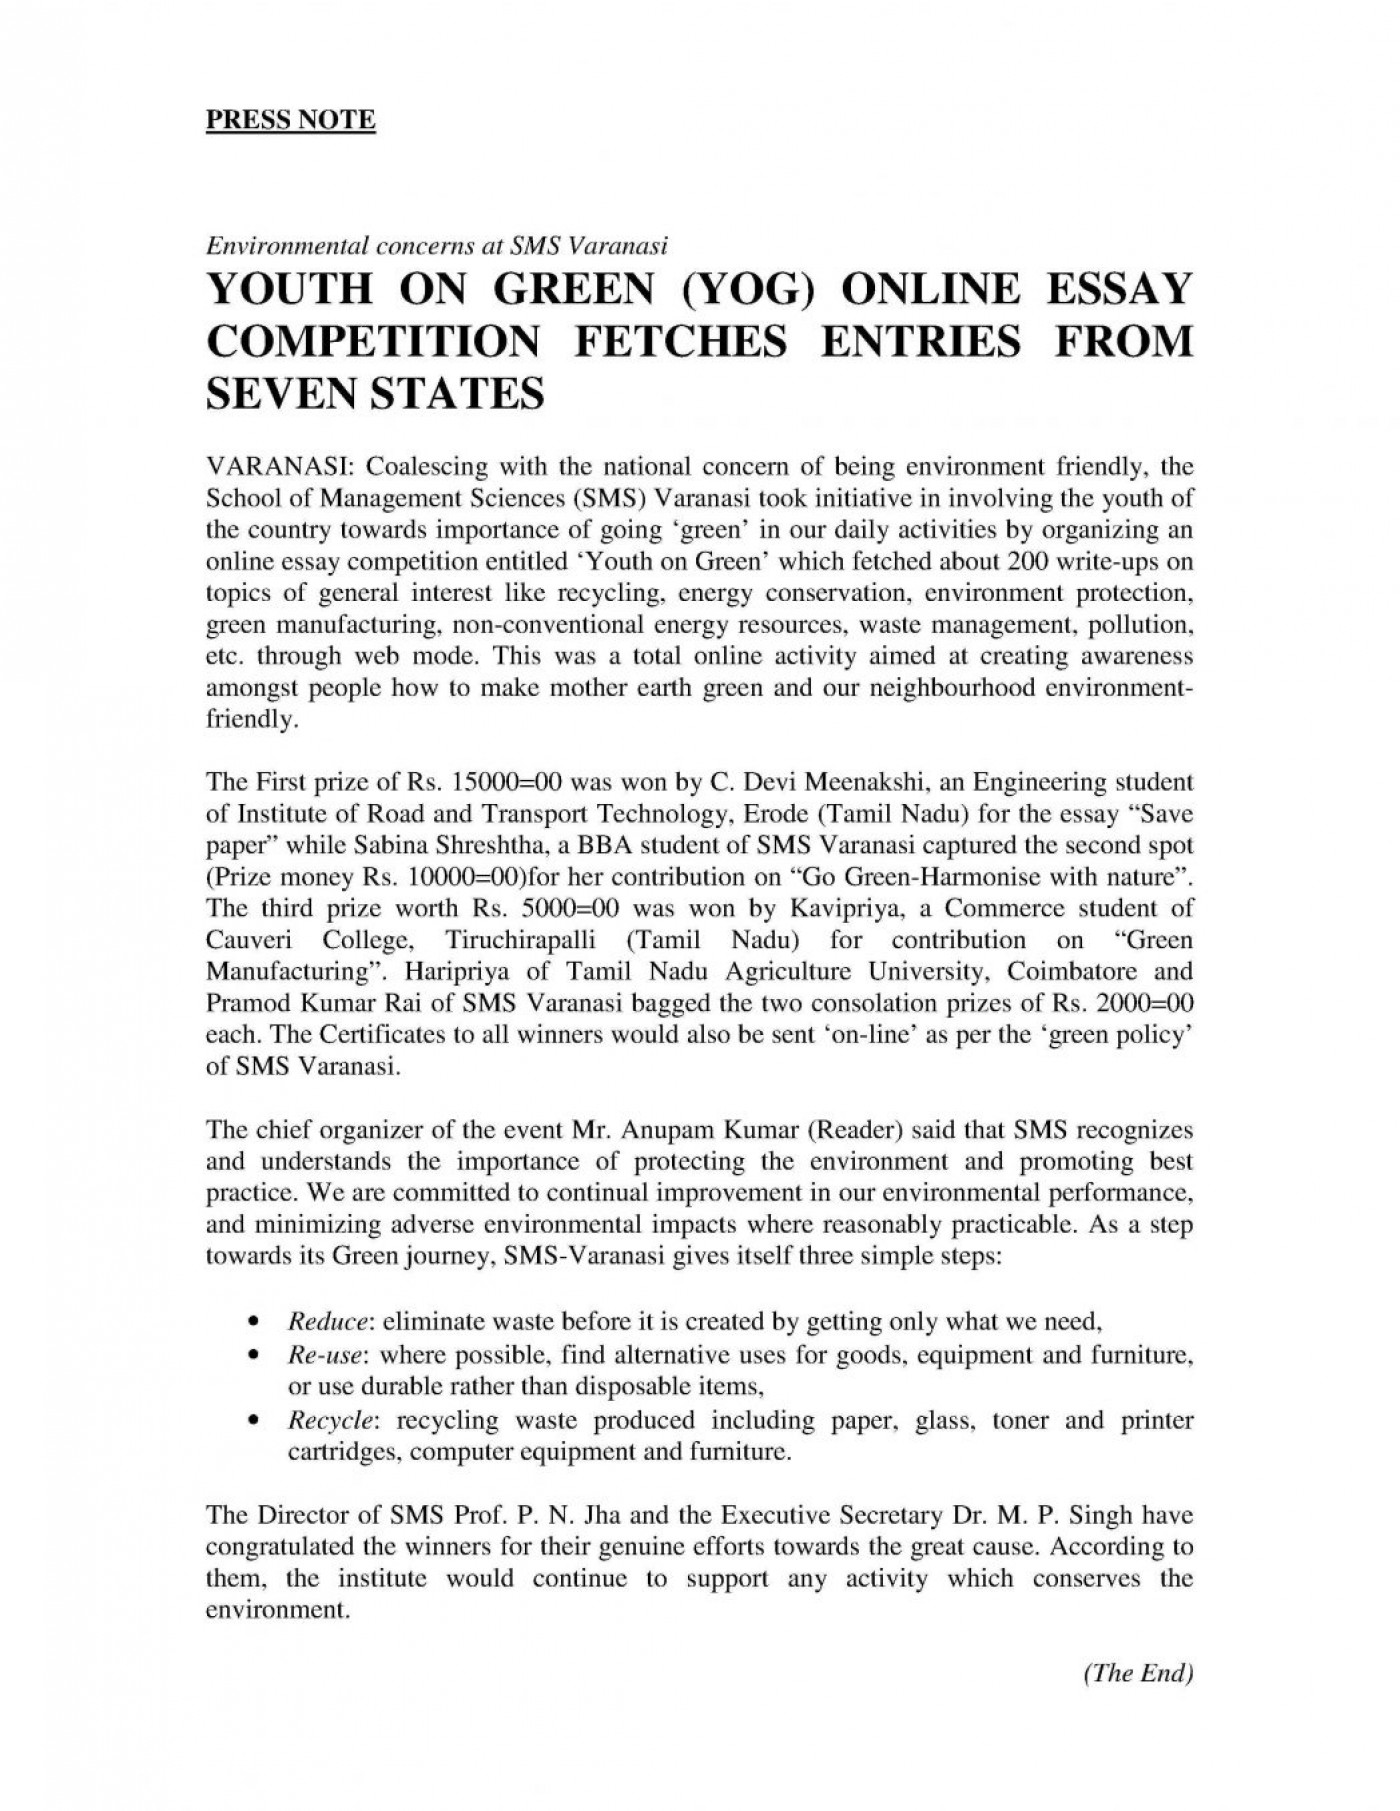 020 Best Essays For College Essay On Good Habits How Tot Application Online Yog Press Re About Yourself Examples Your Background Failure Prompt Off Hook 1048x1356 Example Amazing To Start An With A Quote Analysis Book 1400